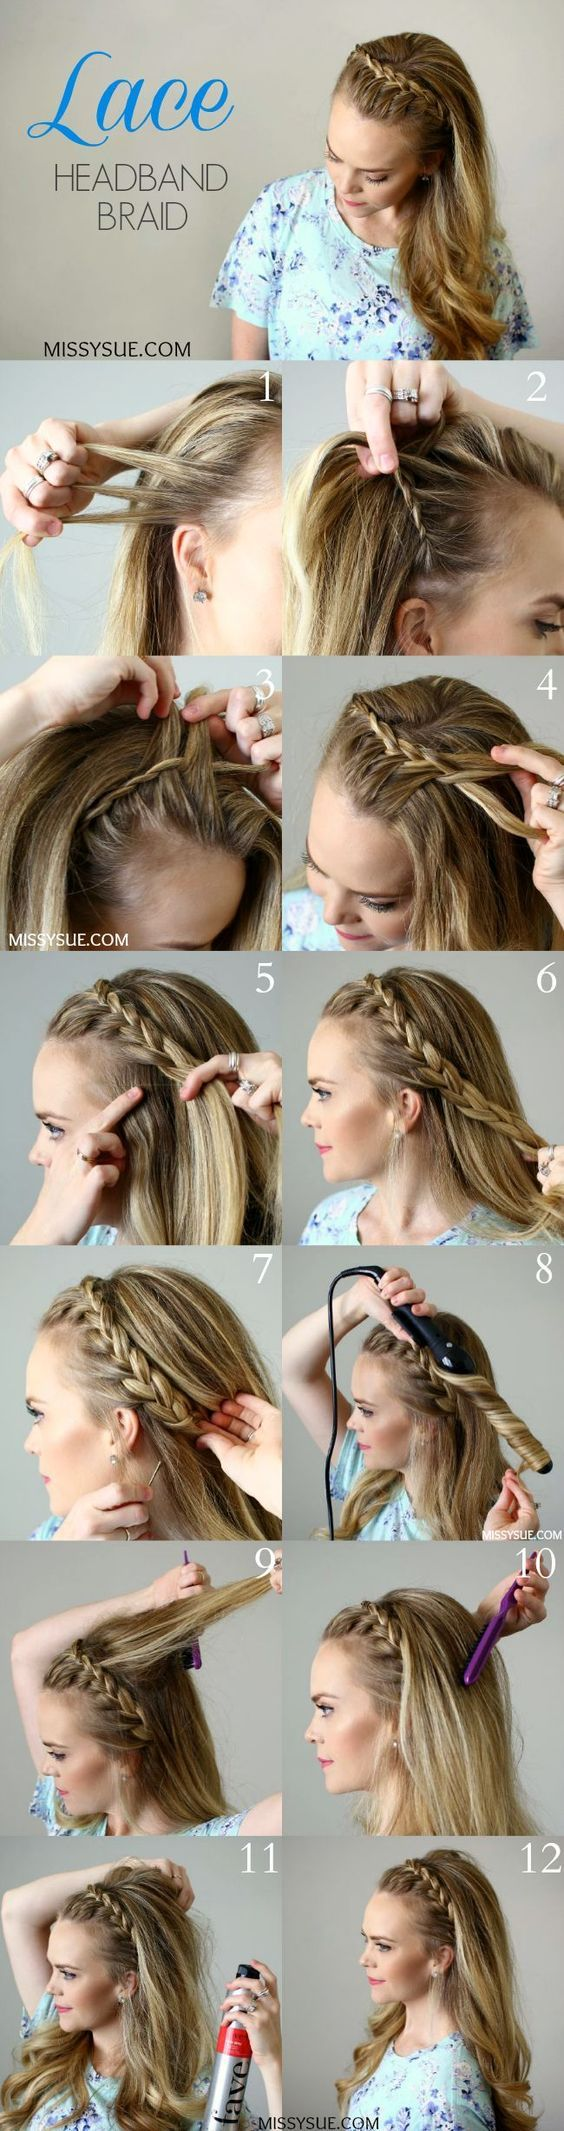 best gurl yo hair images on pinterest hairstyle ideas cute